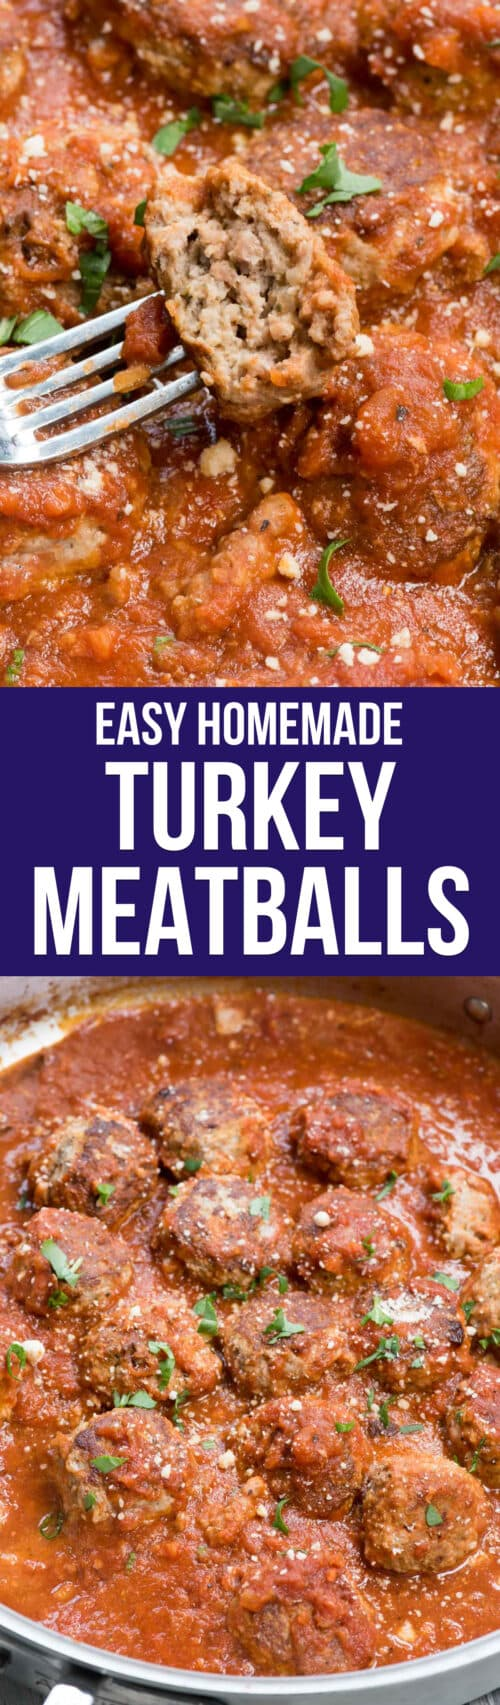 collage of turkey meatballs in sauce